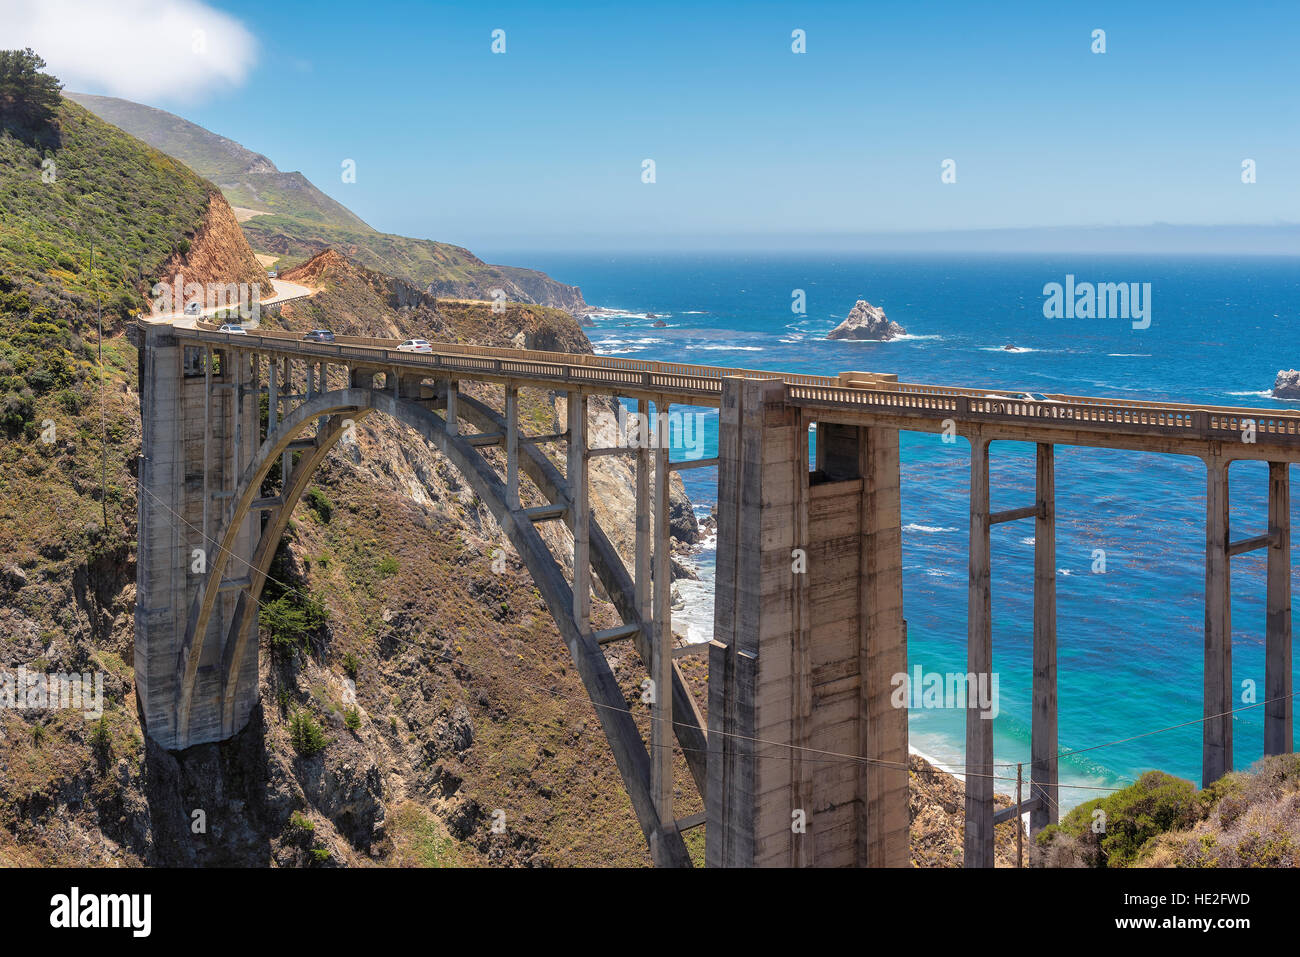 Bixby Bridge sur la côte Pacifique de la Californie, USA. Photo Stock